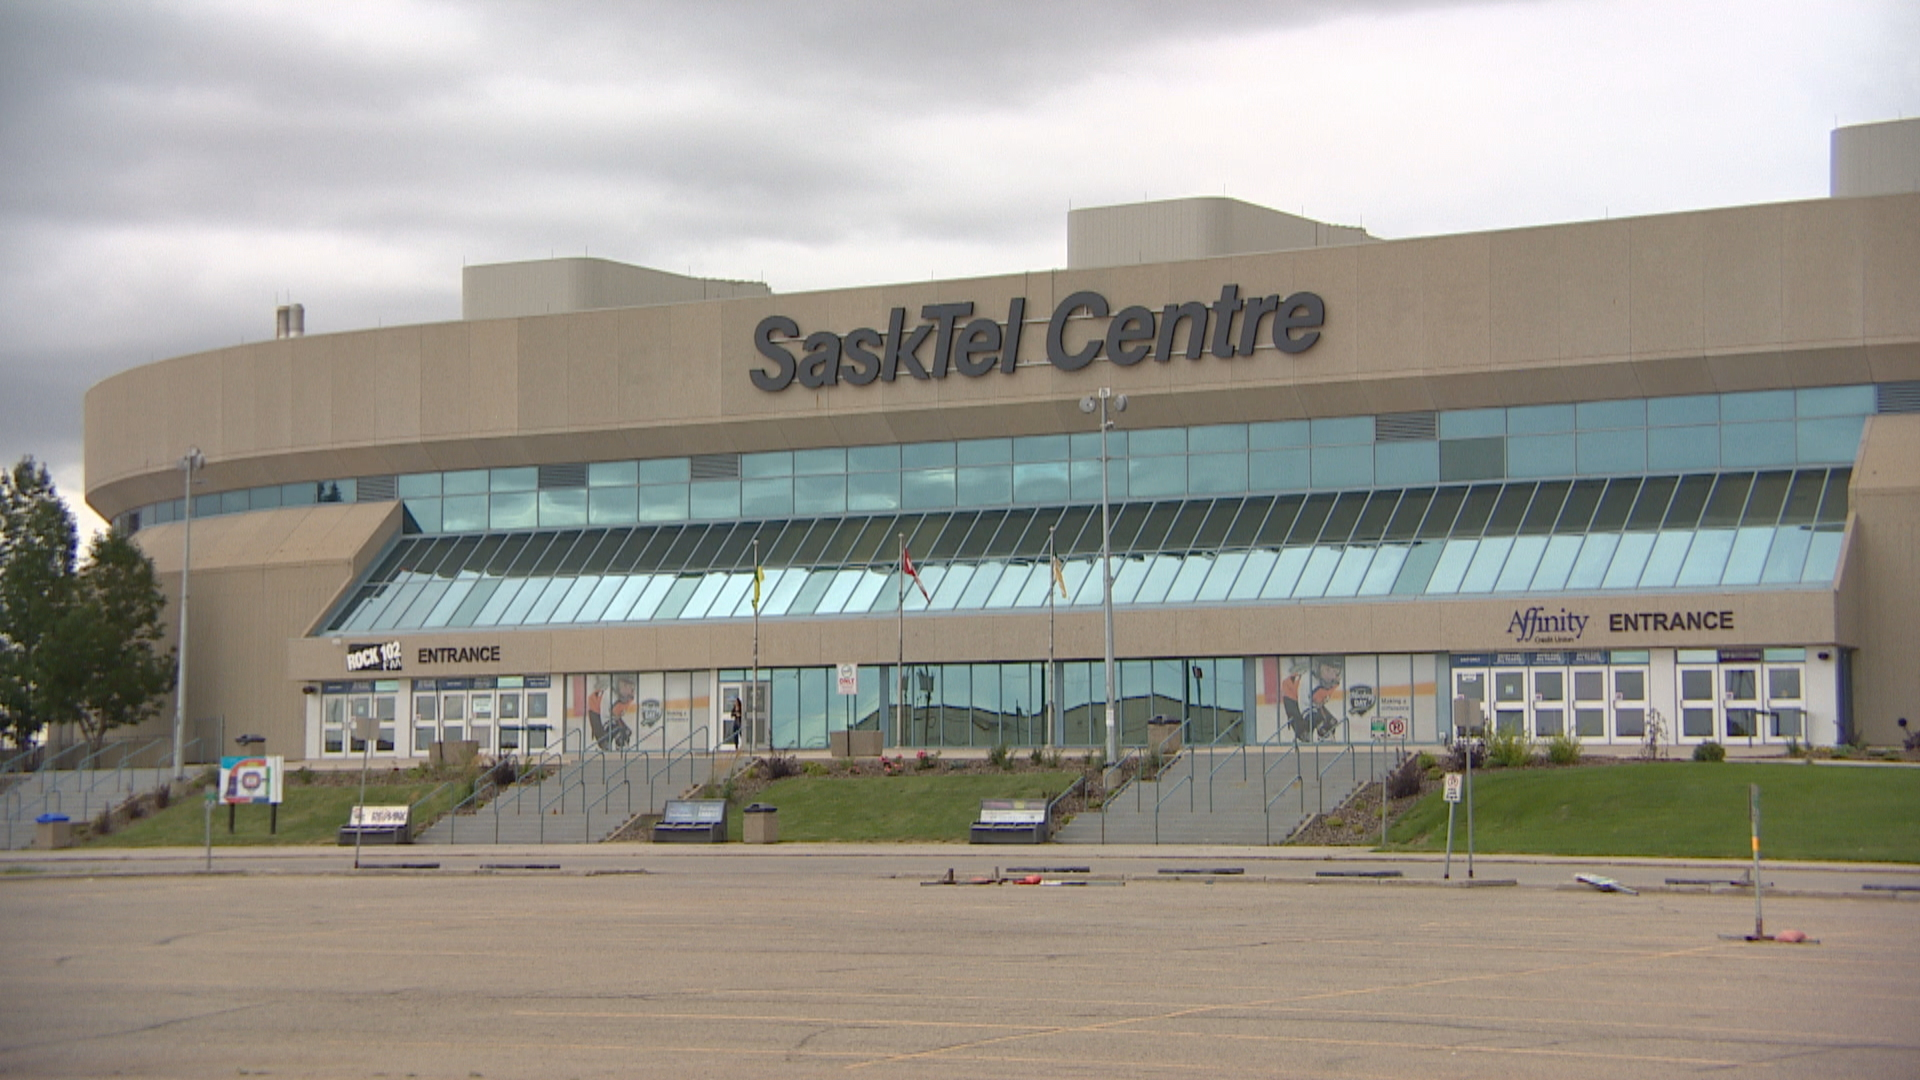 """A consultant hired by SaskTel Centre to size up the building says it's """"dated"""" and not up to grade compared to other North American arenas that are either new or currently under construction. (CBC)"""